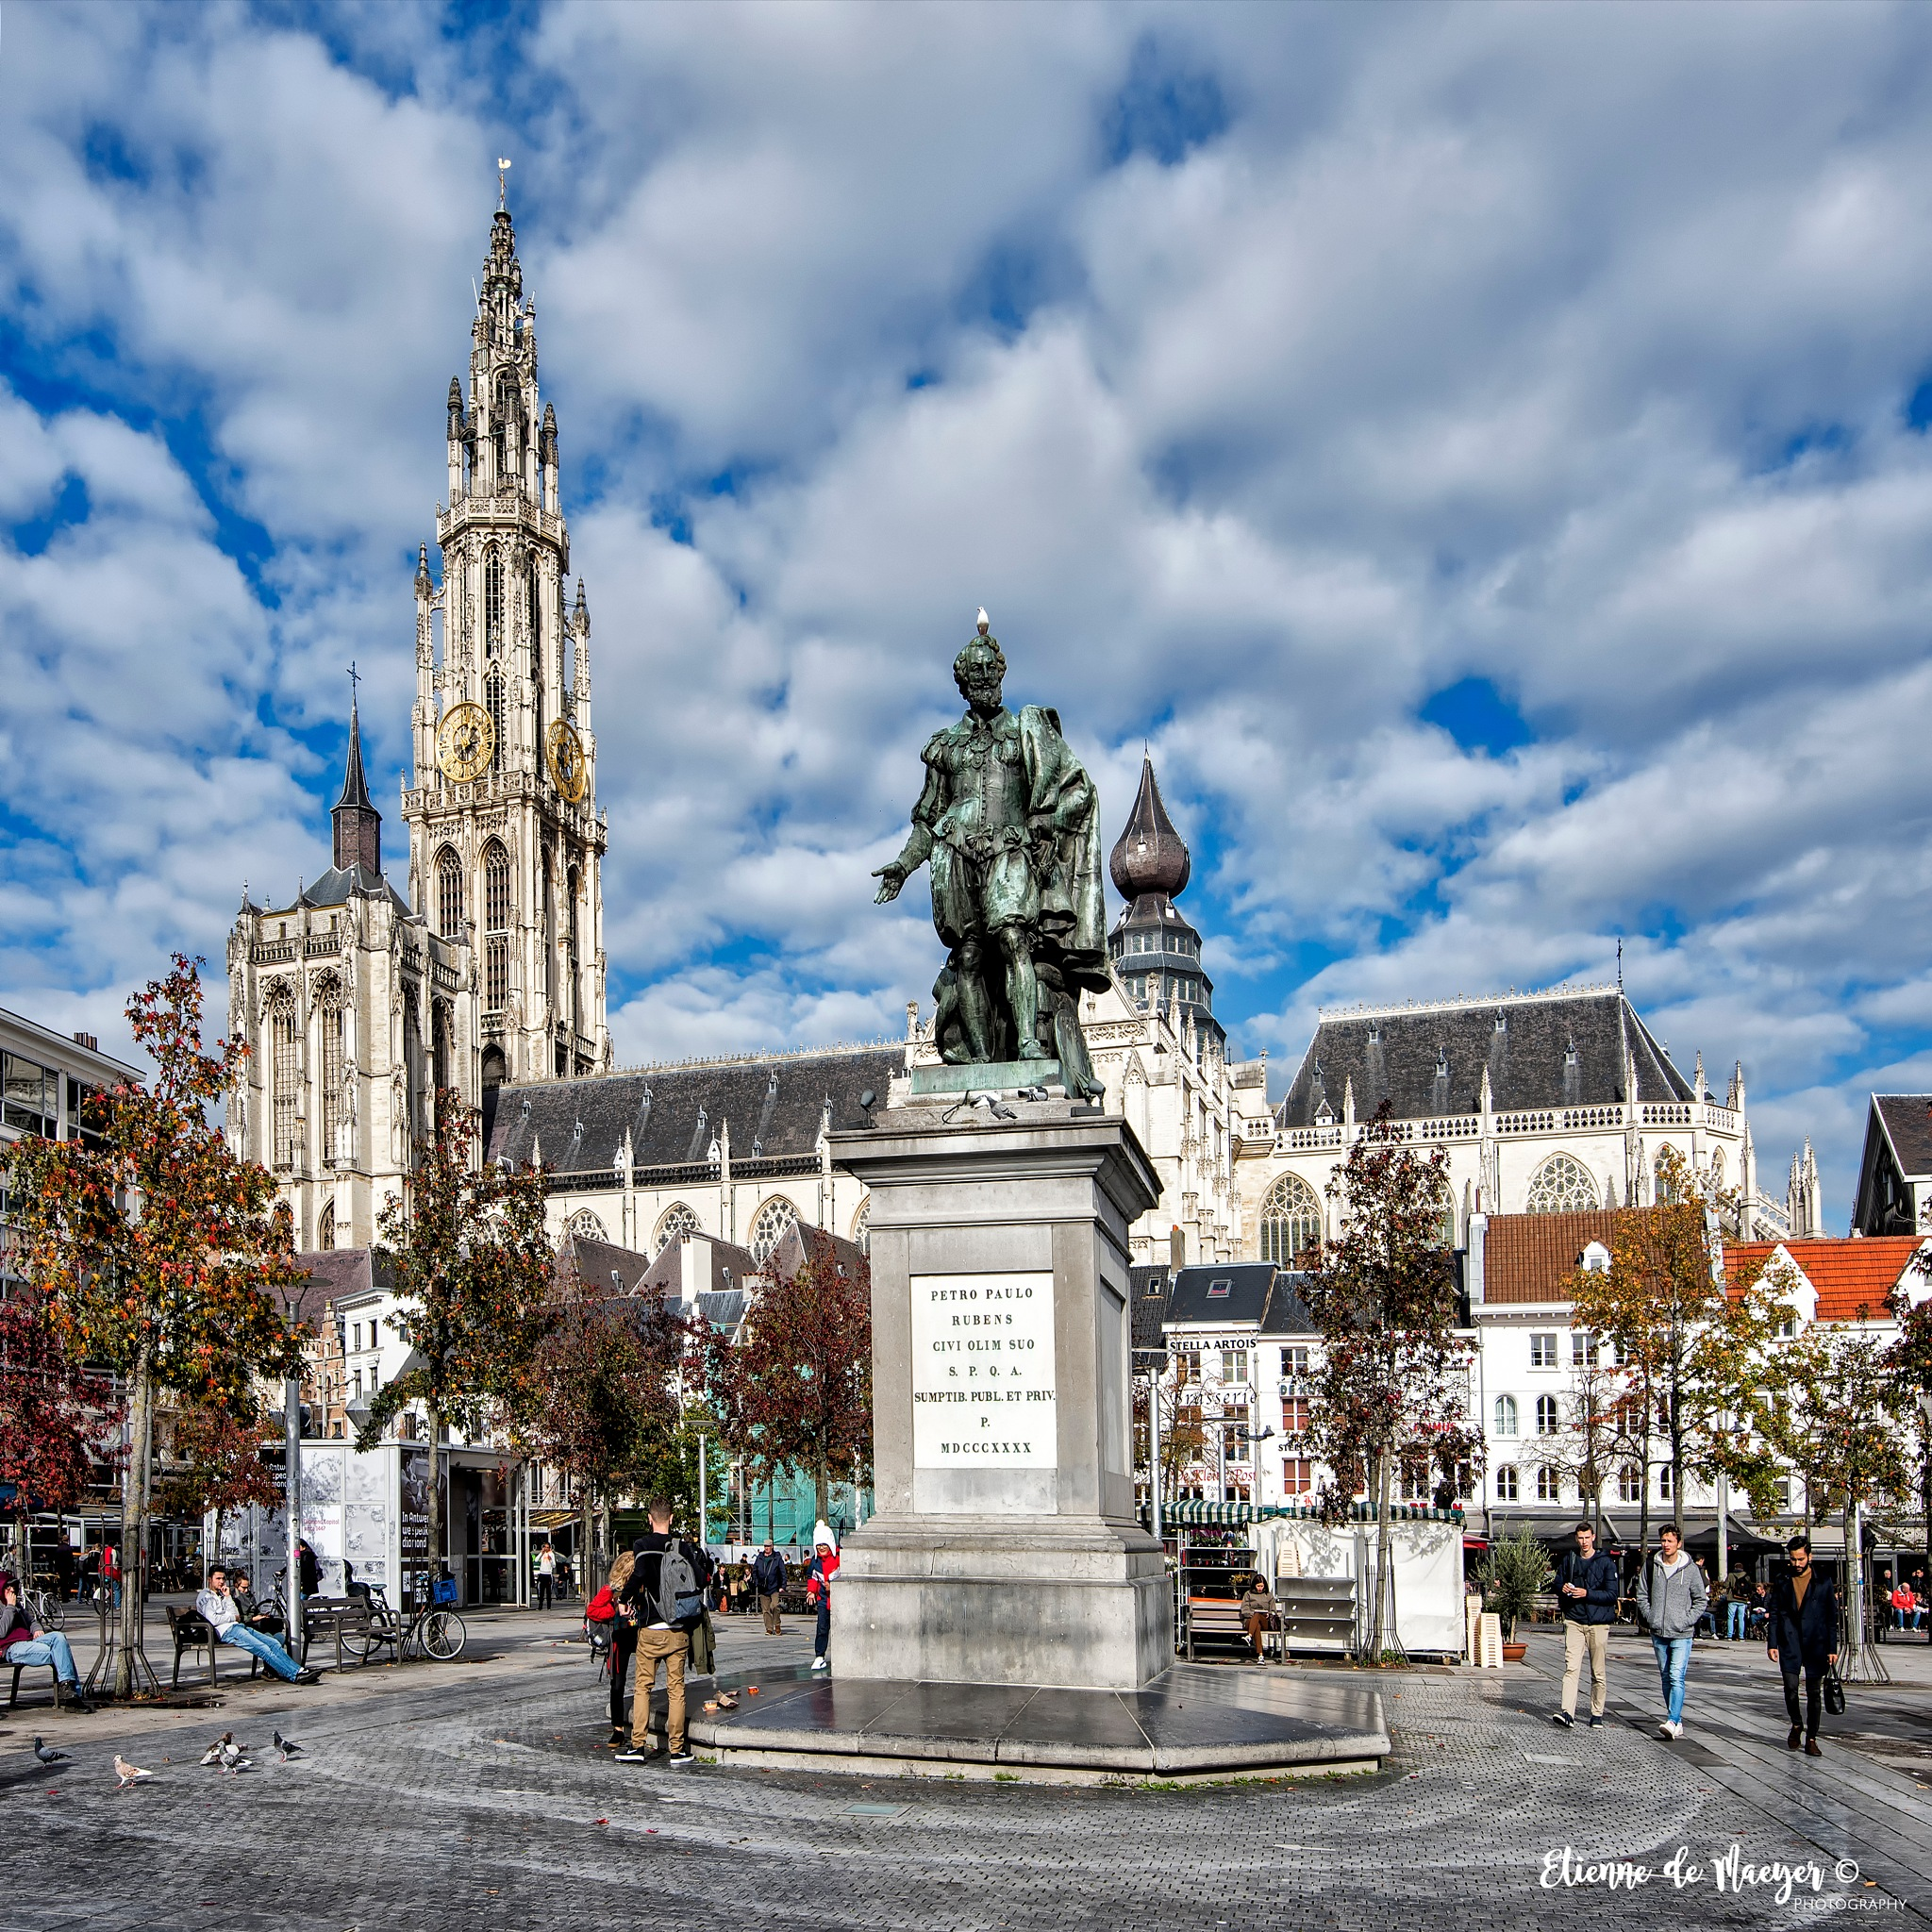 Antwerpen by Etienne de Maeyer